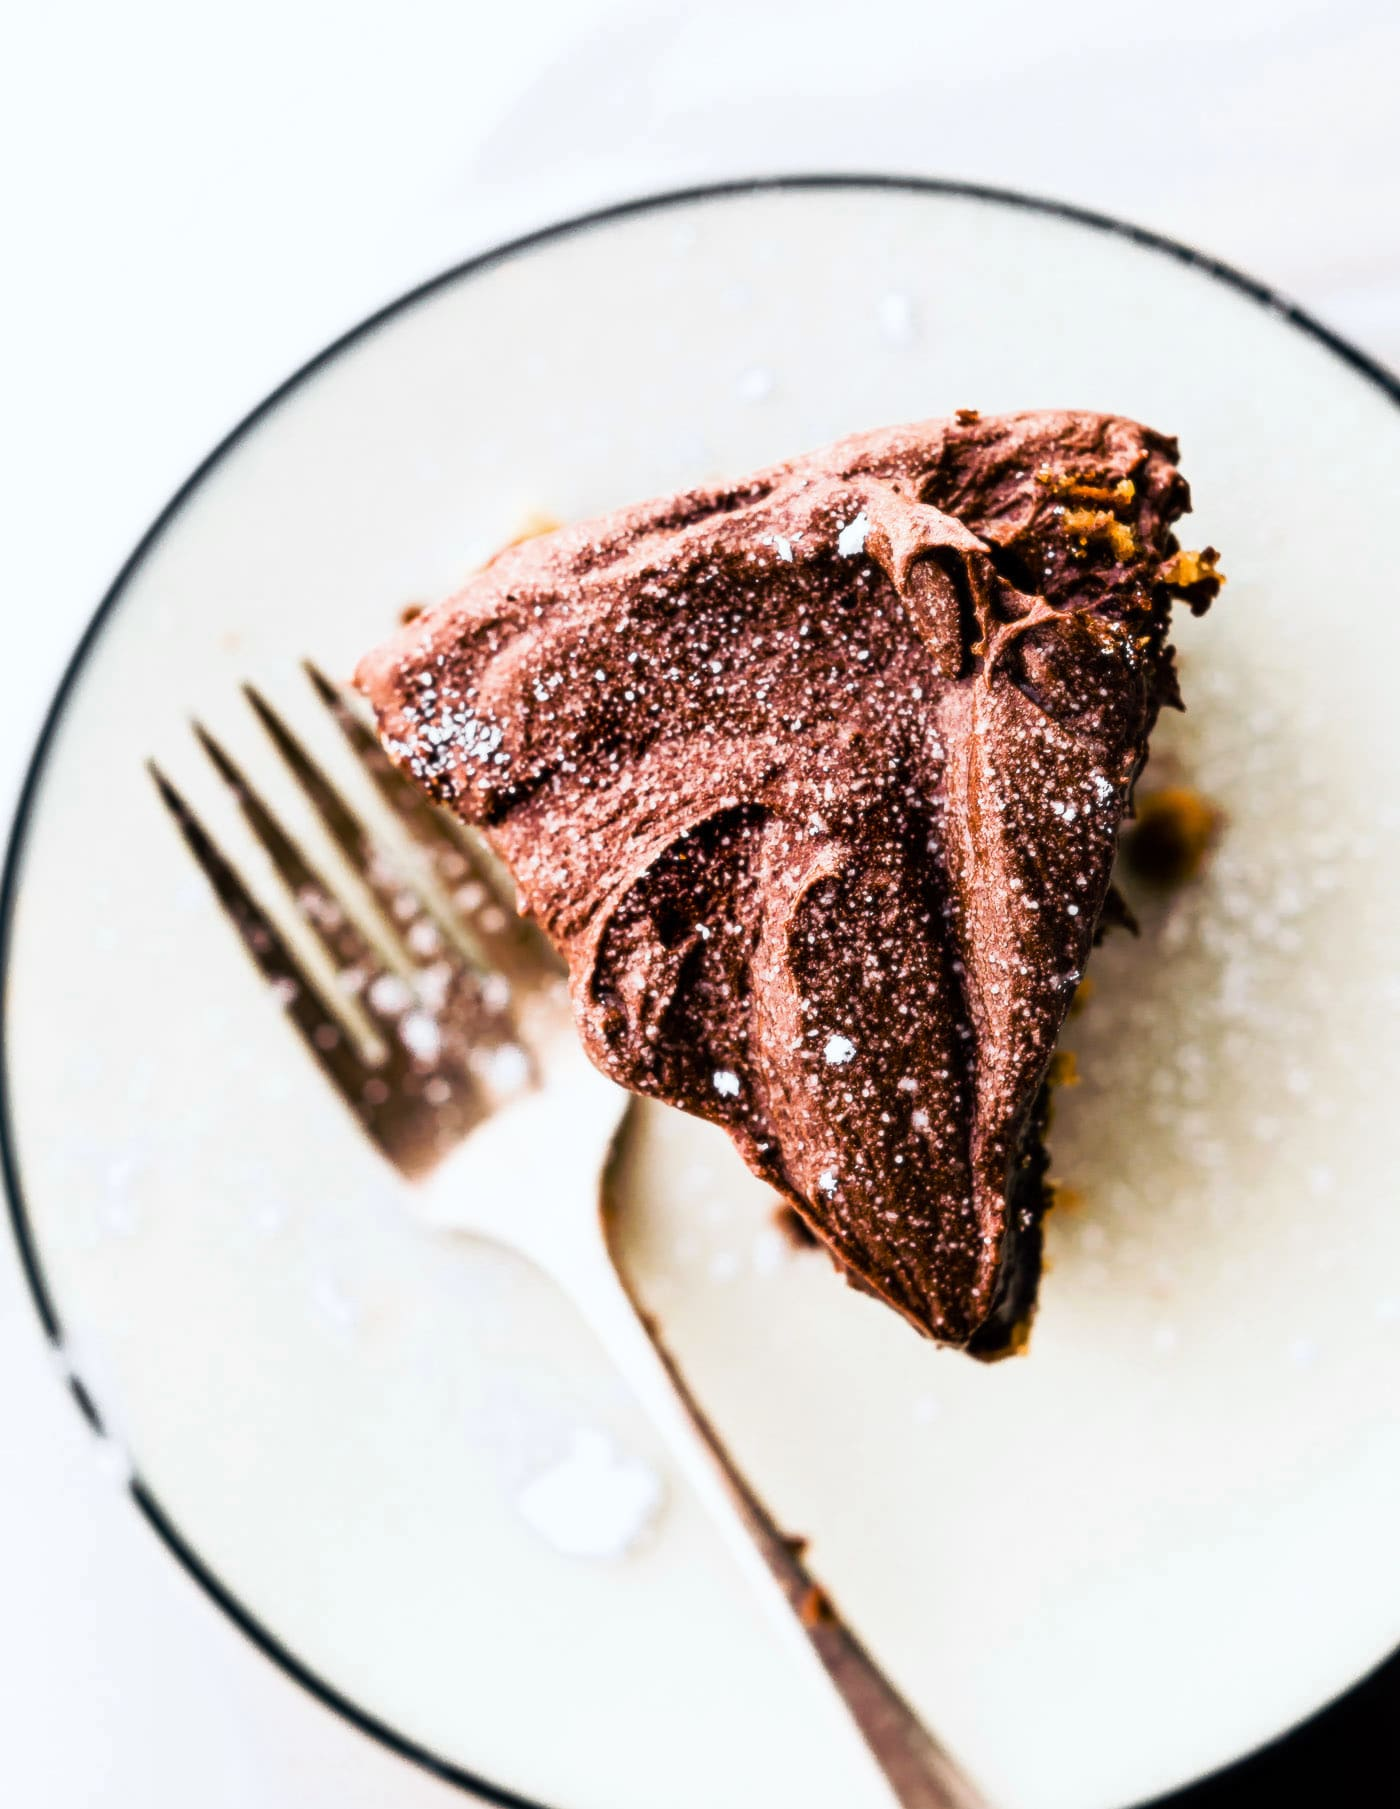 Easy Vegan White Cake With Chocolate Frosting Paleo Option